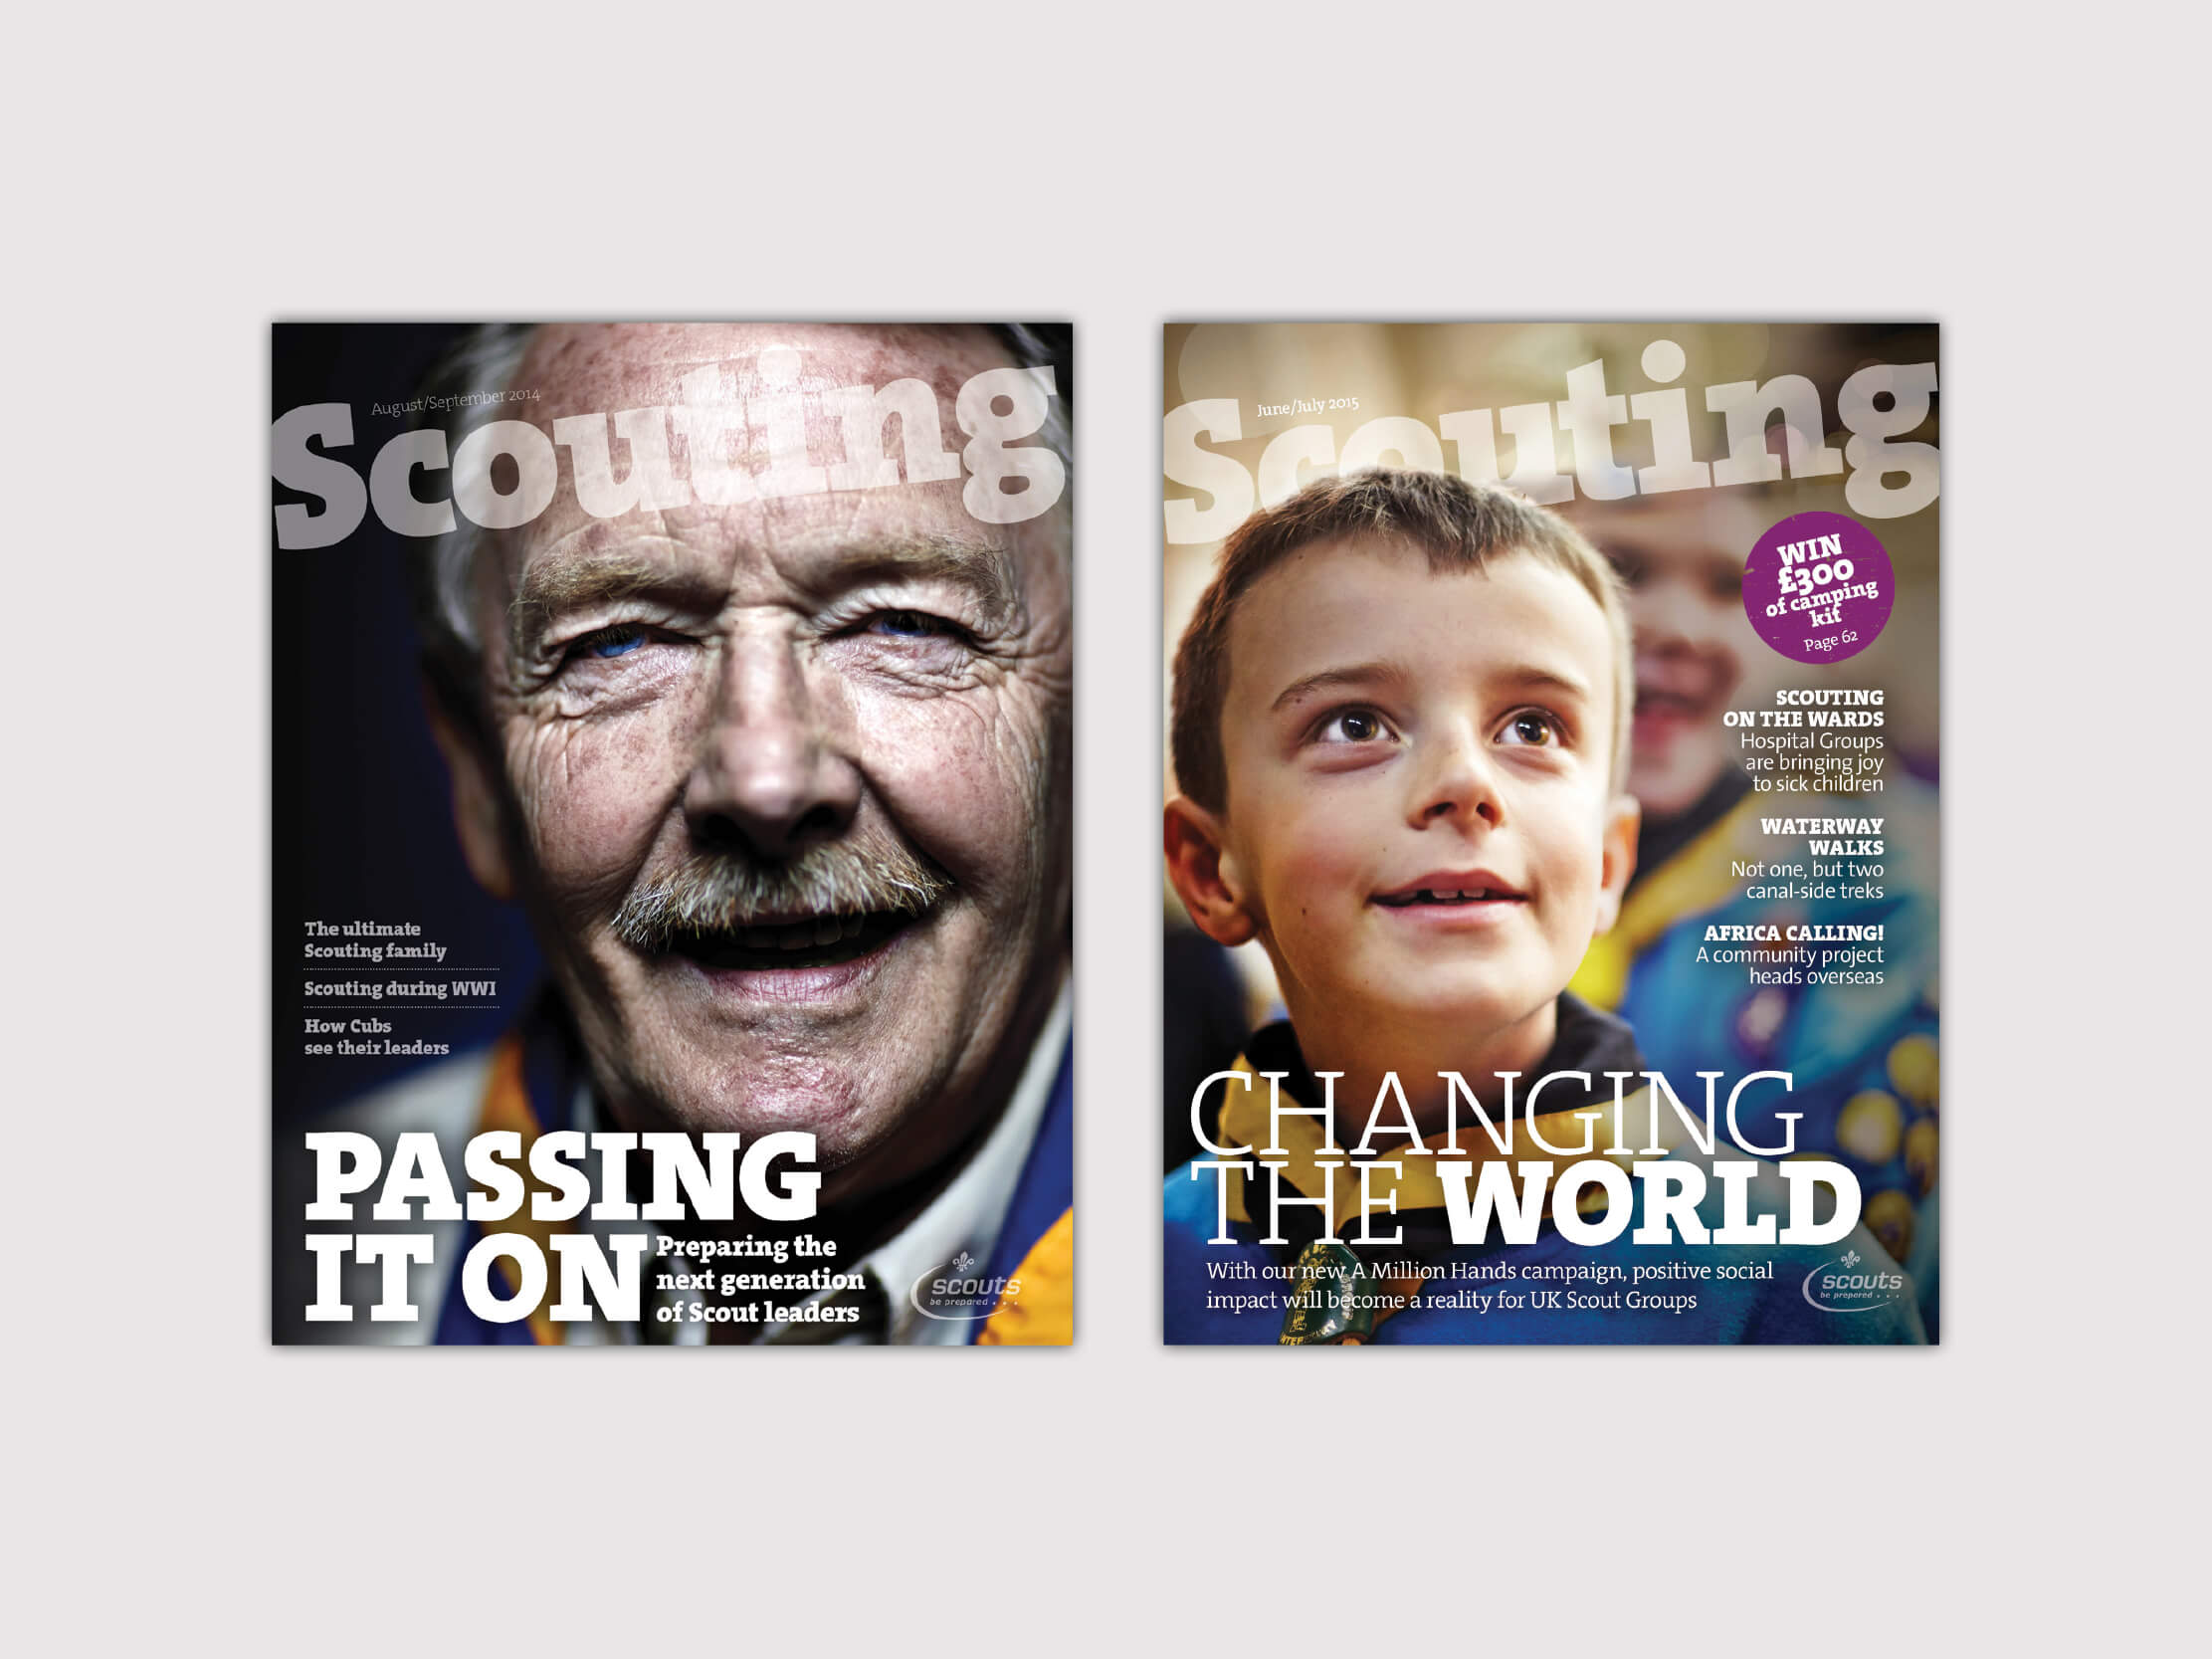 UK Scout Association